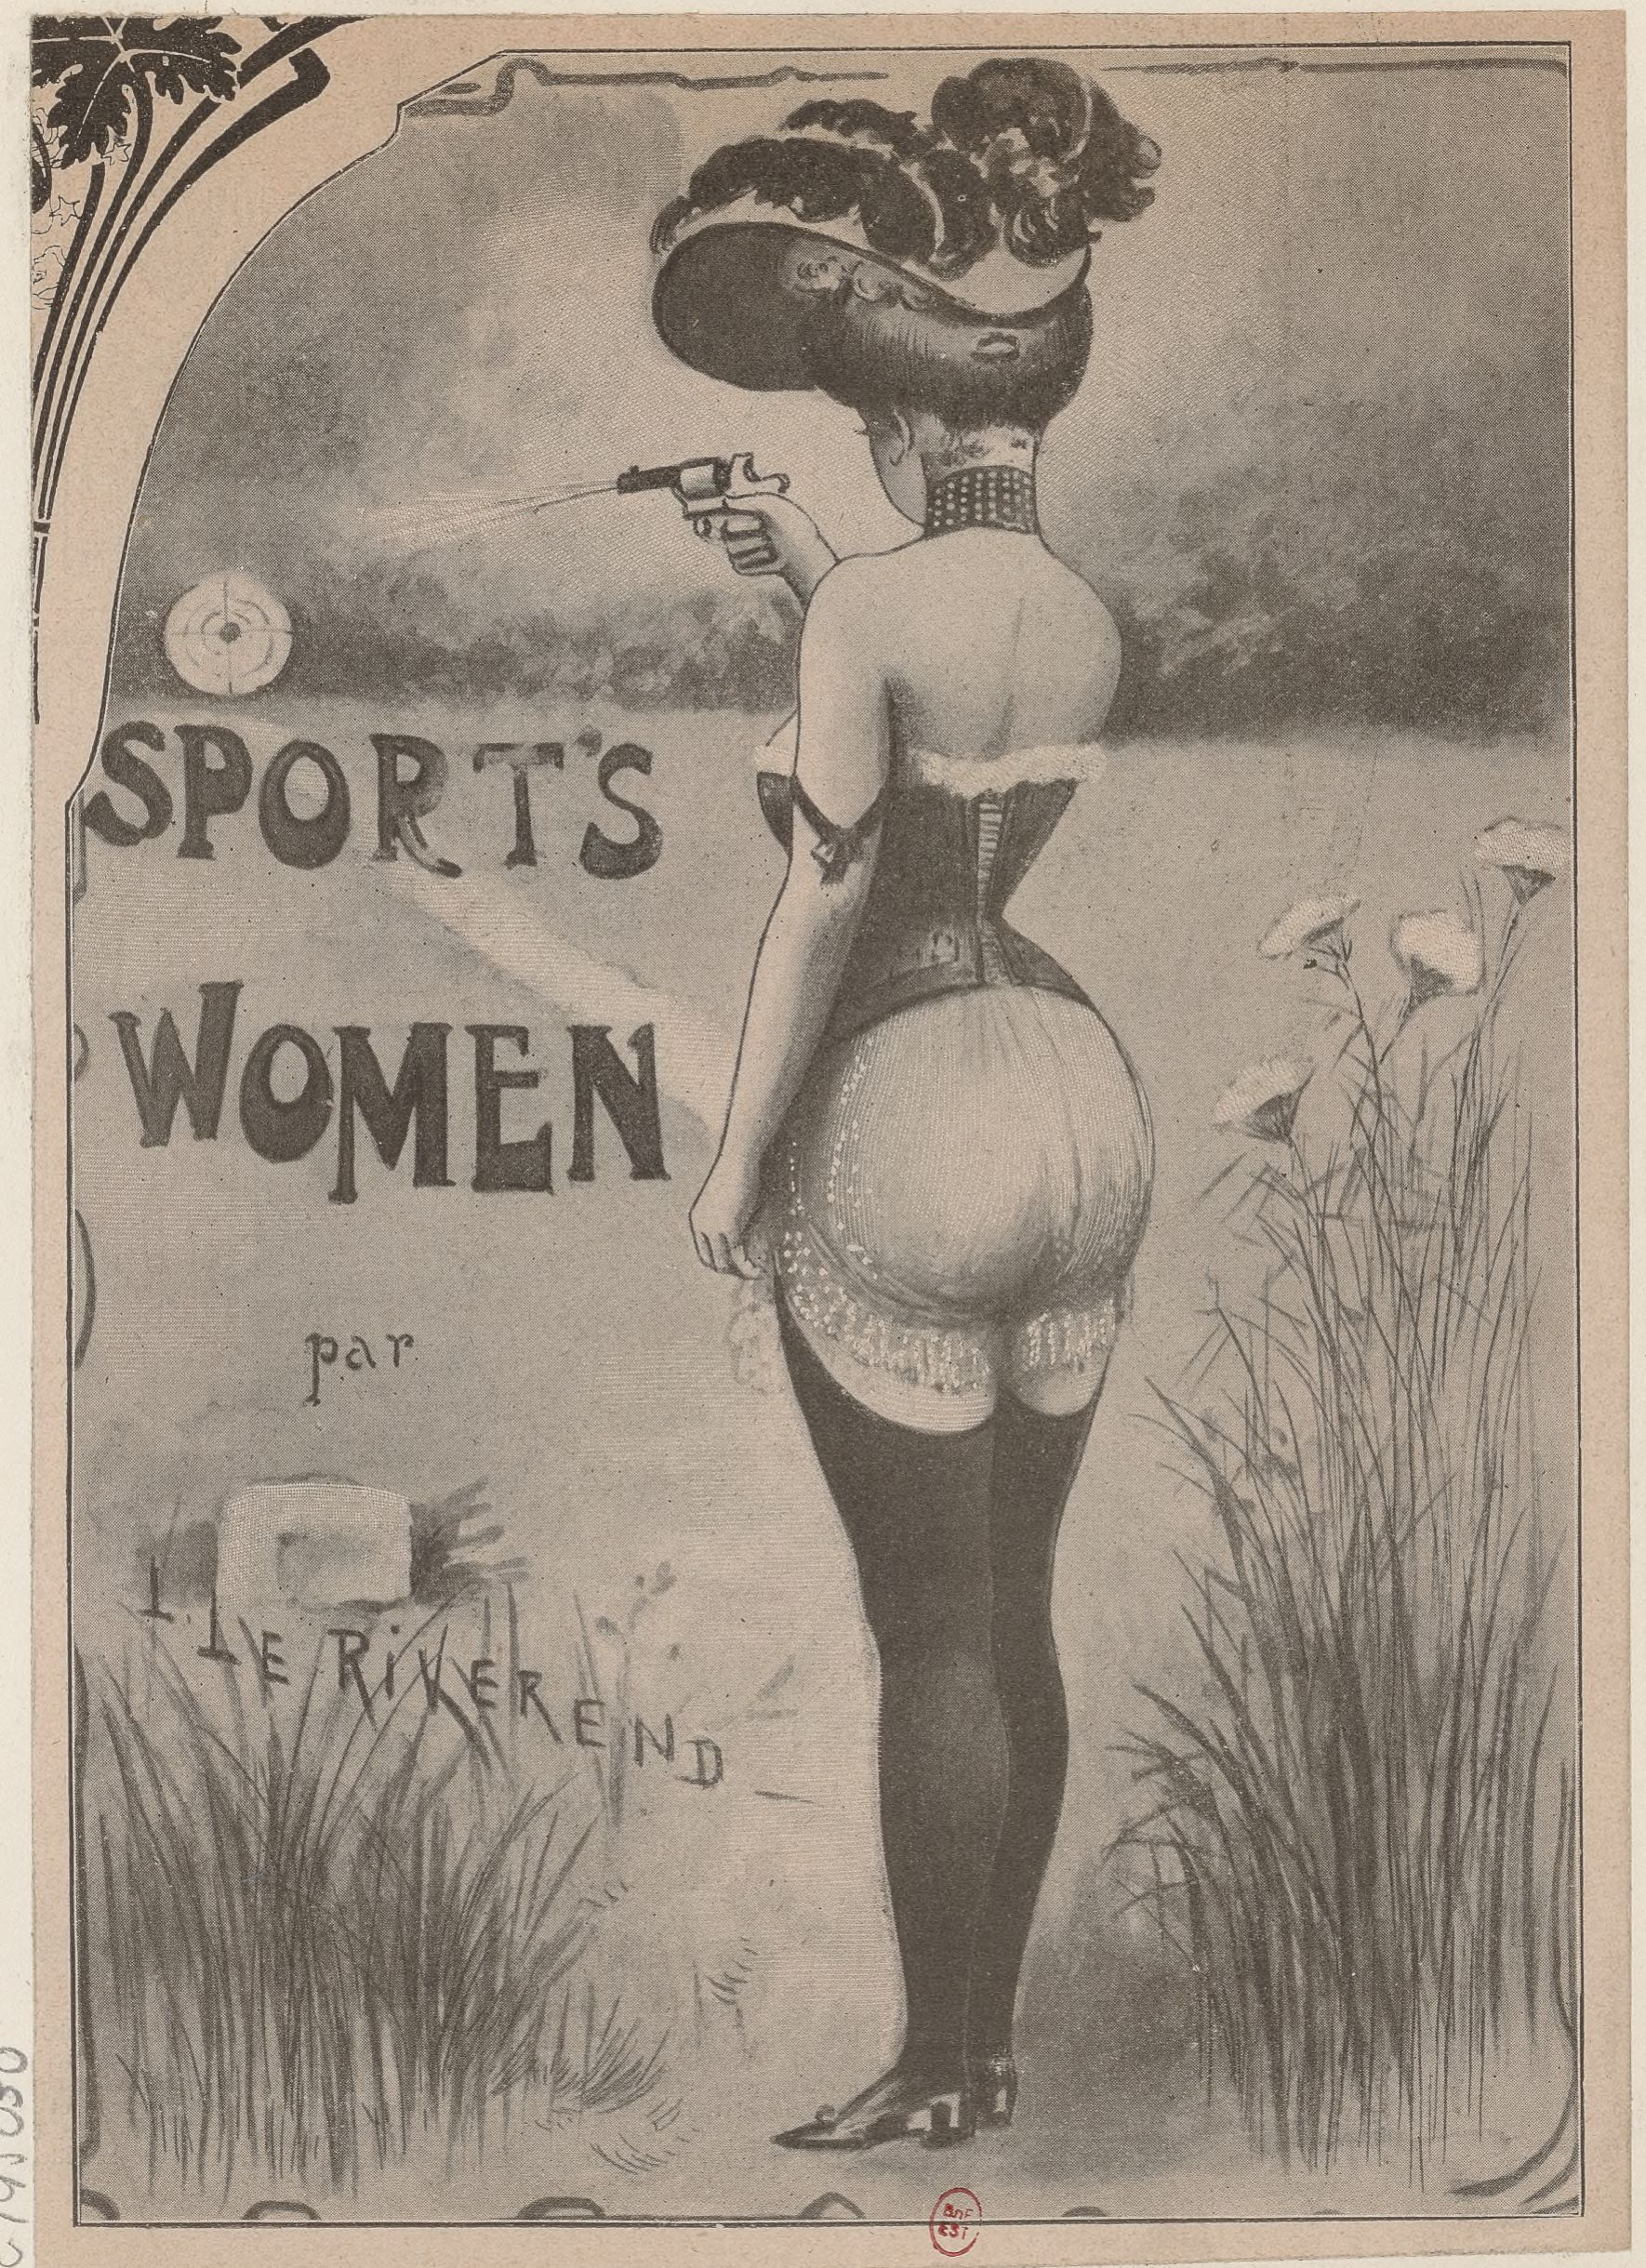 Figures 5a et 5b : Le Riverend, Sport's Women, s. d. : a) [sans titre] ; b) « La Yachtwoman ». Défets recueillis dans Collection Jaquet. Dessinateurs et humoristes français des XIXe et XXe siècles, série 1 : L-M, tome 4, image no 84 (BnF, MFILM G-195029-195030, disponibles sur Gallica, a) et b)).